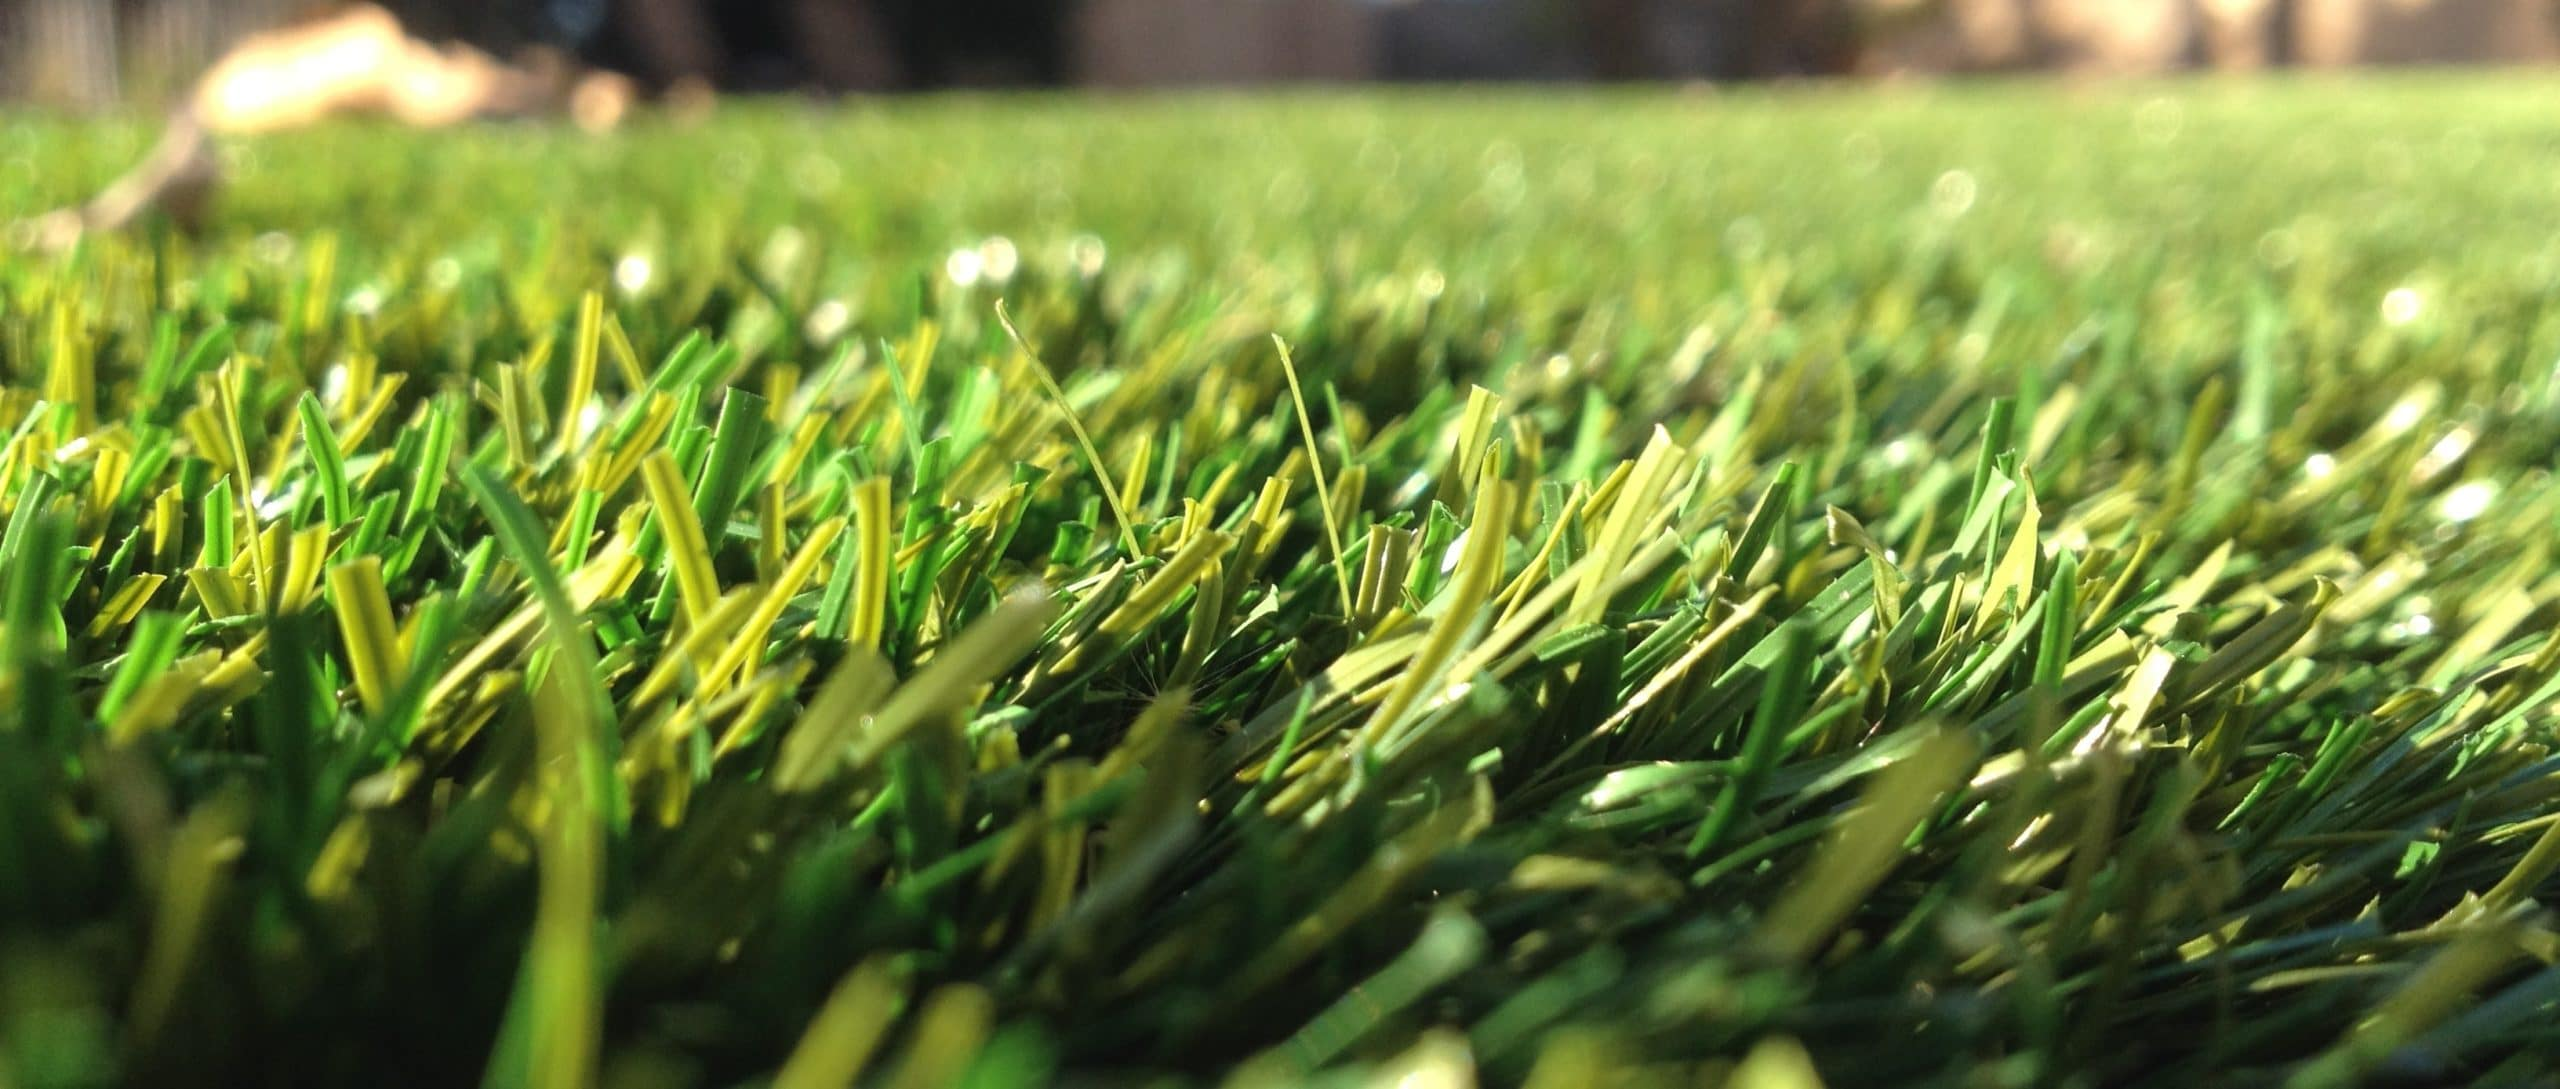 Buy Fake Grass Infill For Artificial Grass Do You Really Need It